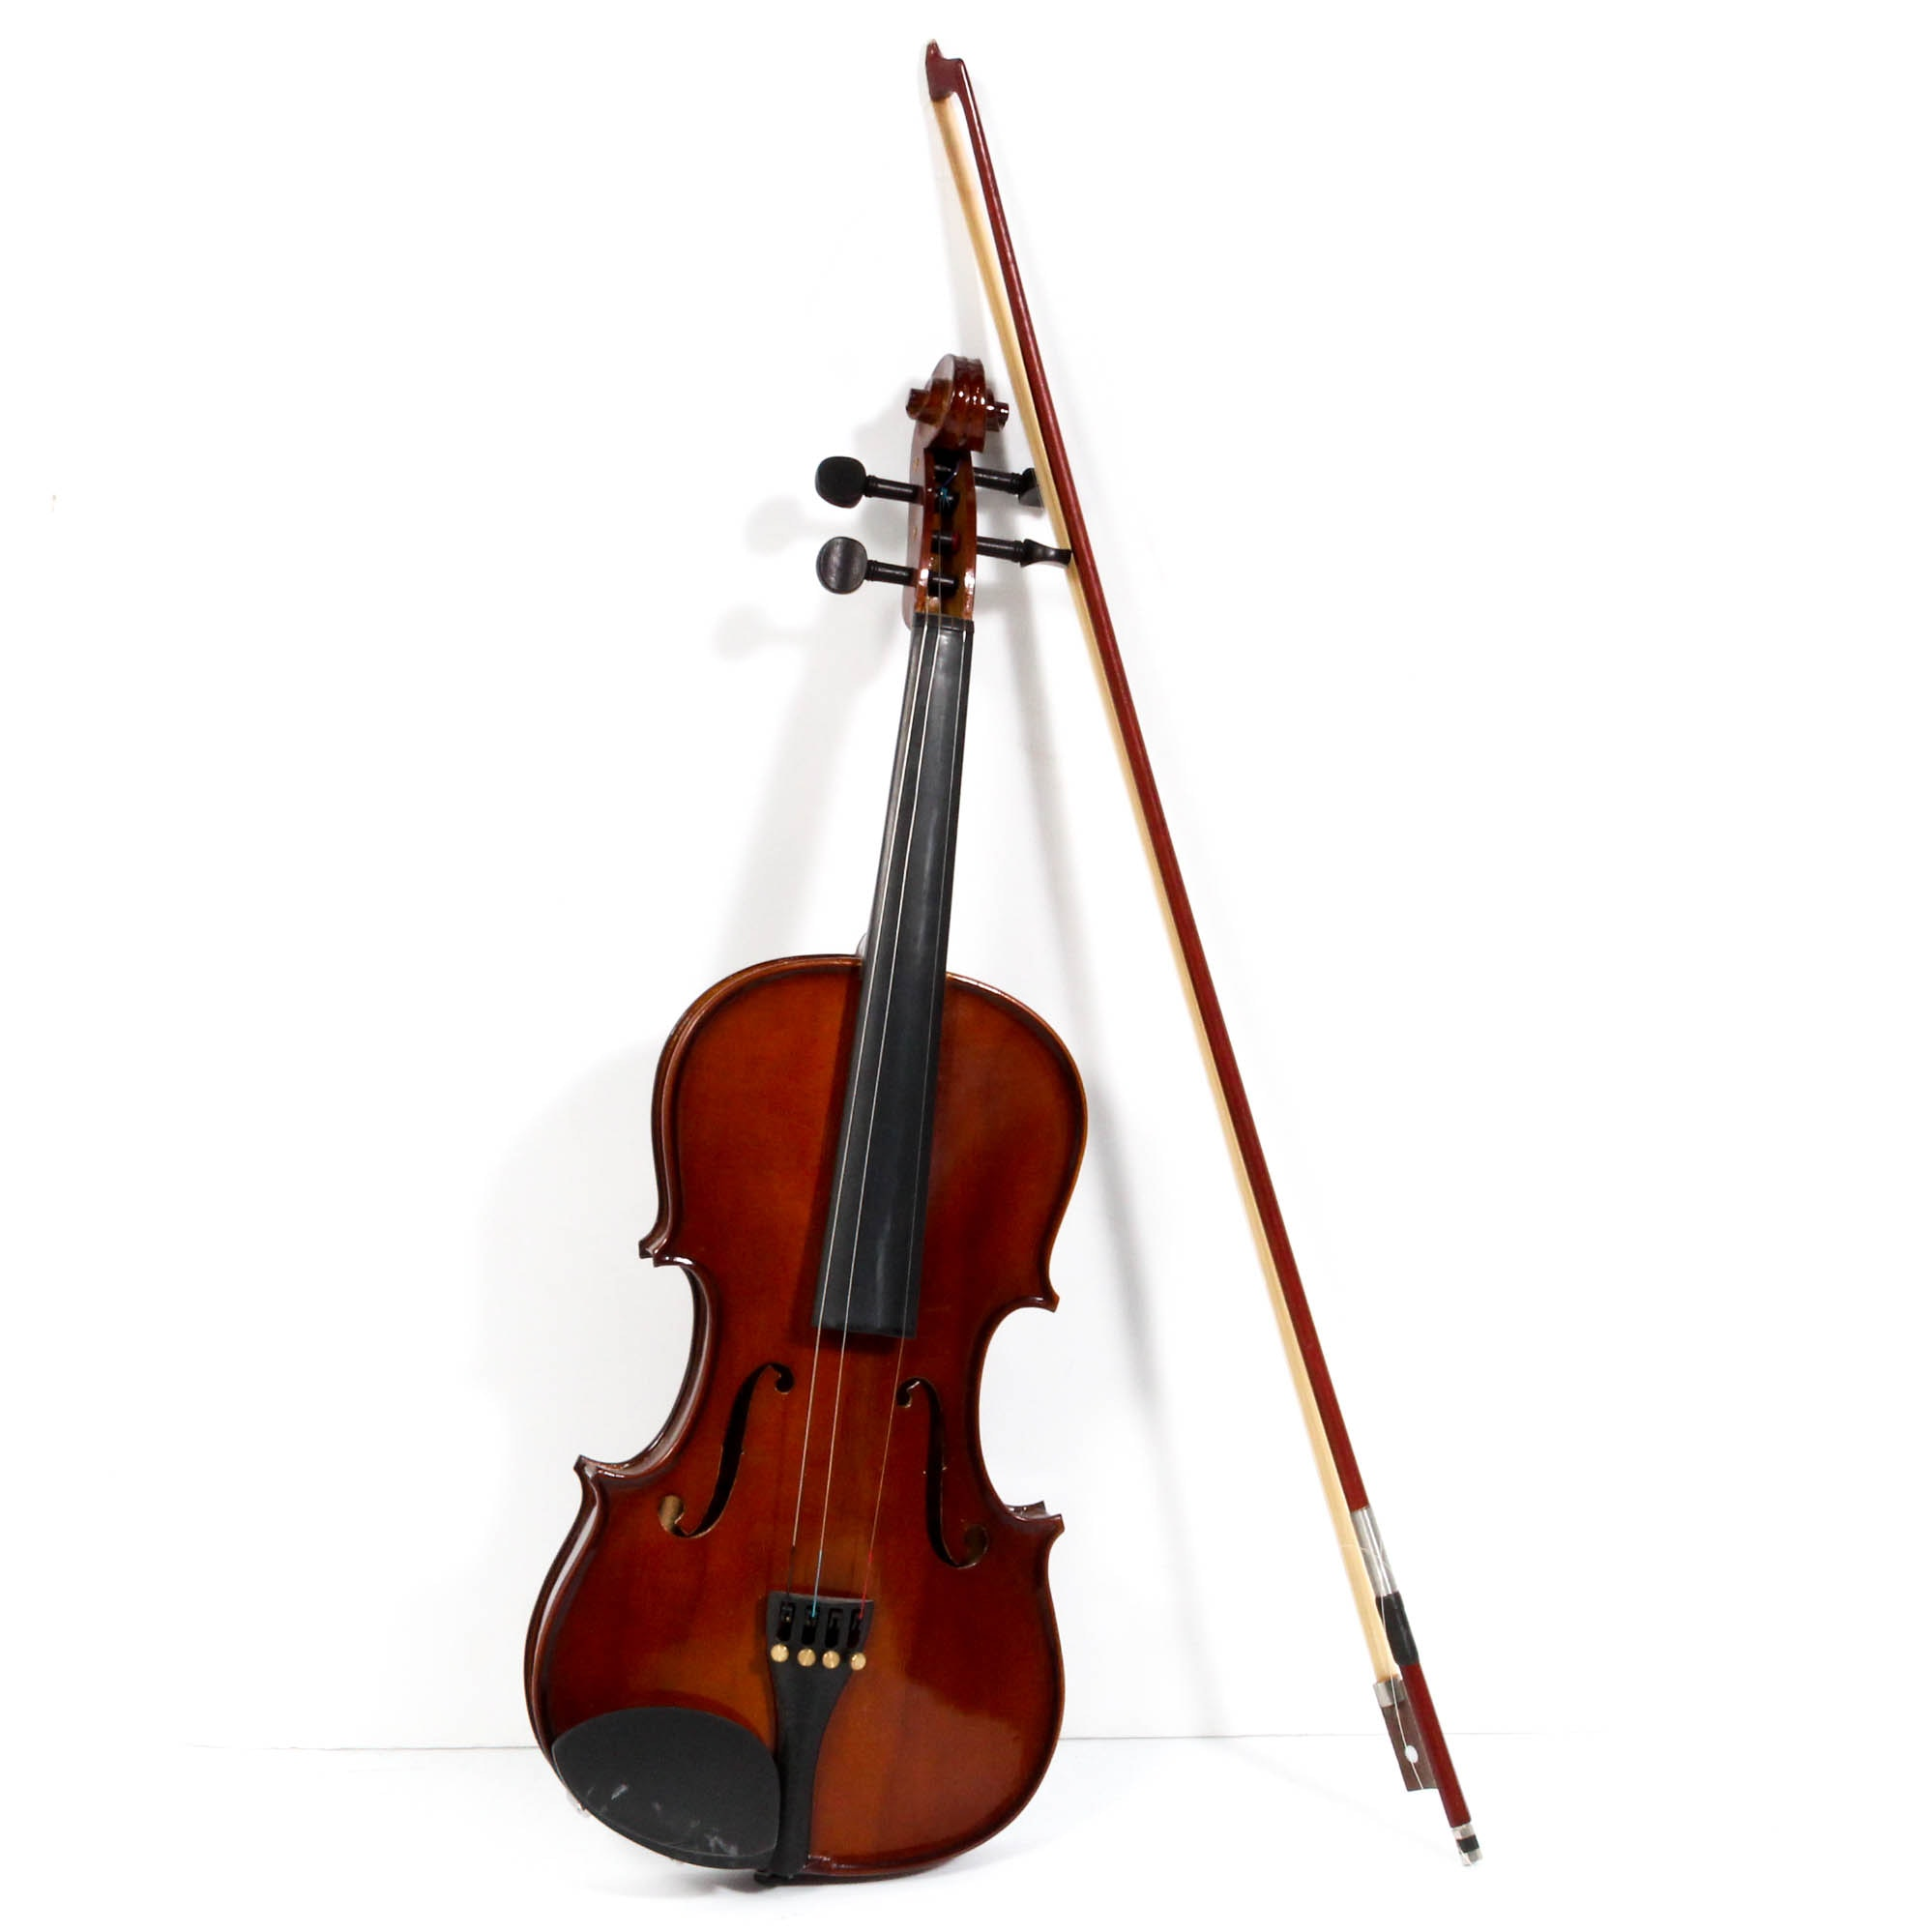 Hand-Crafted Palatino VN-350 Violin with Case